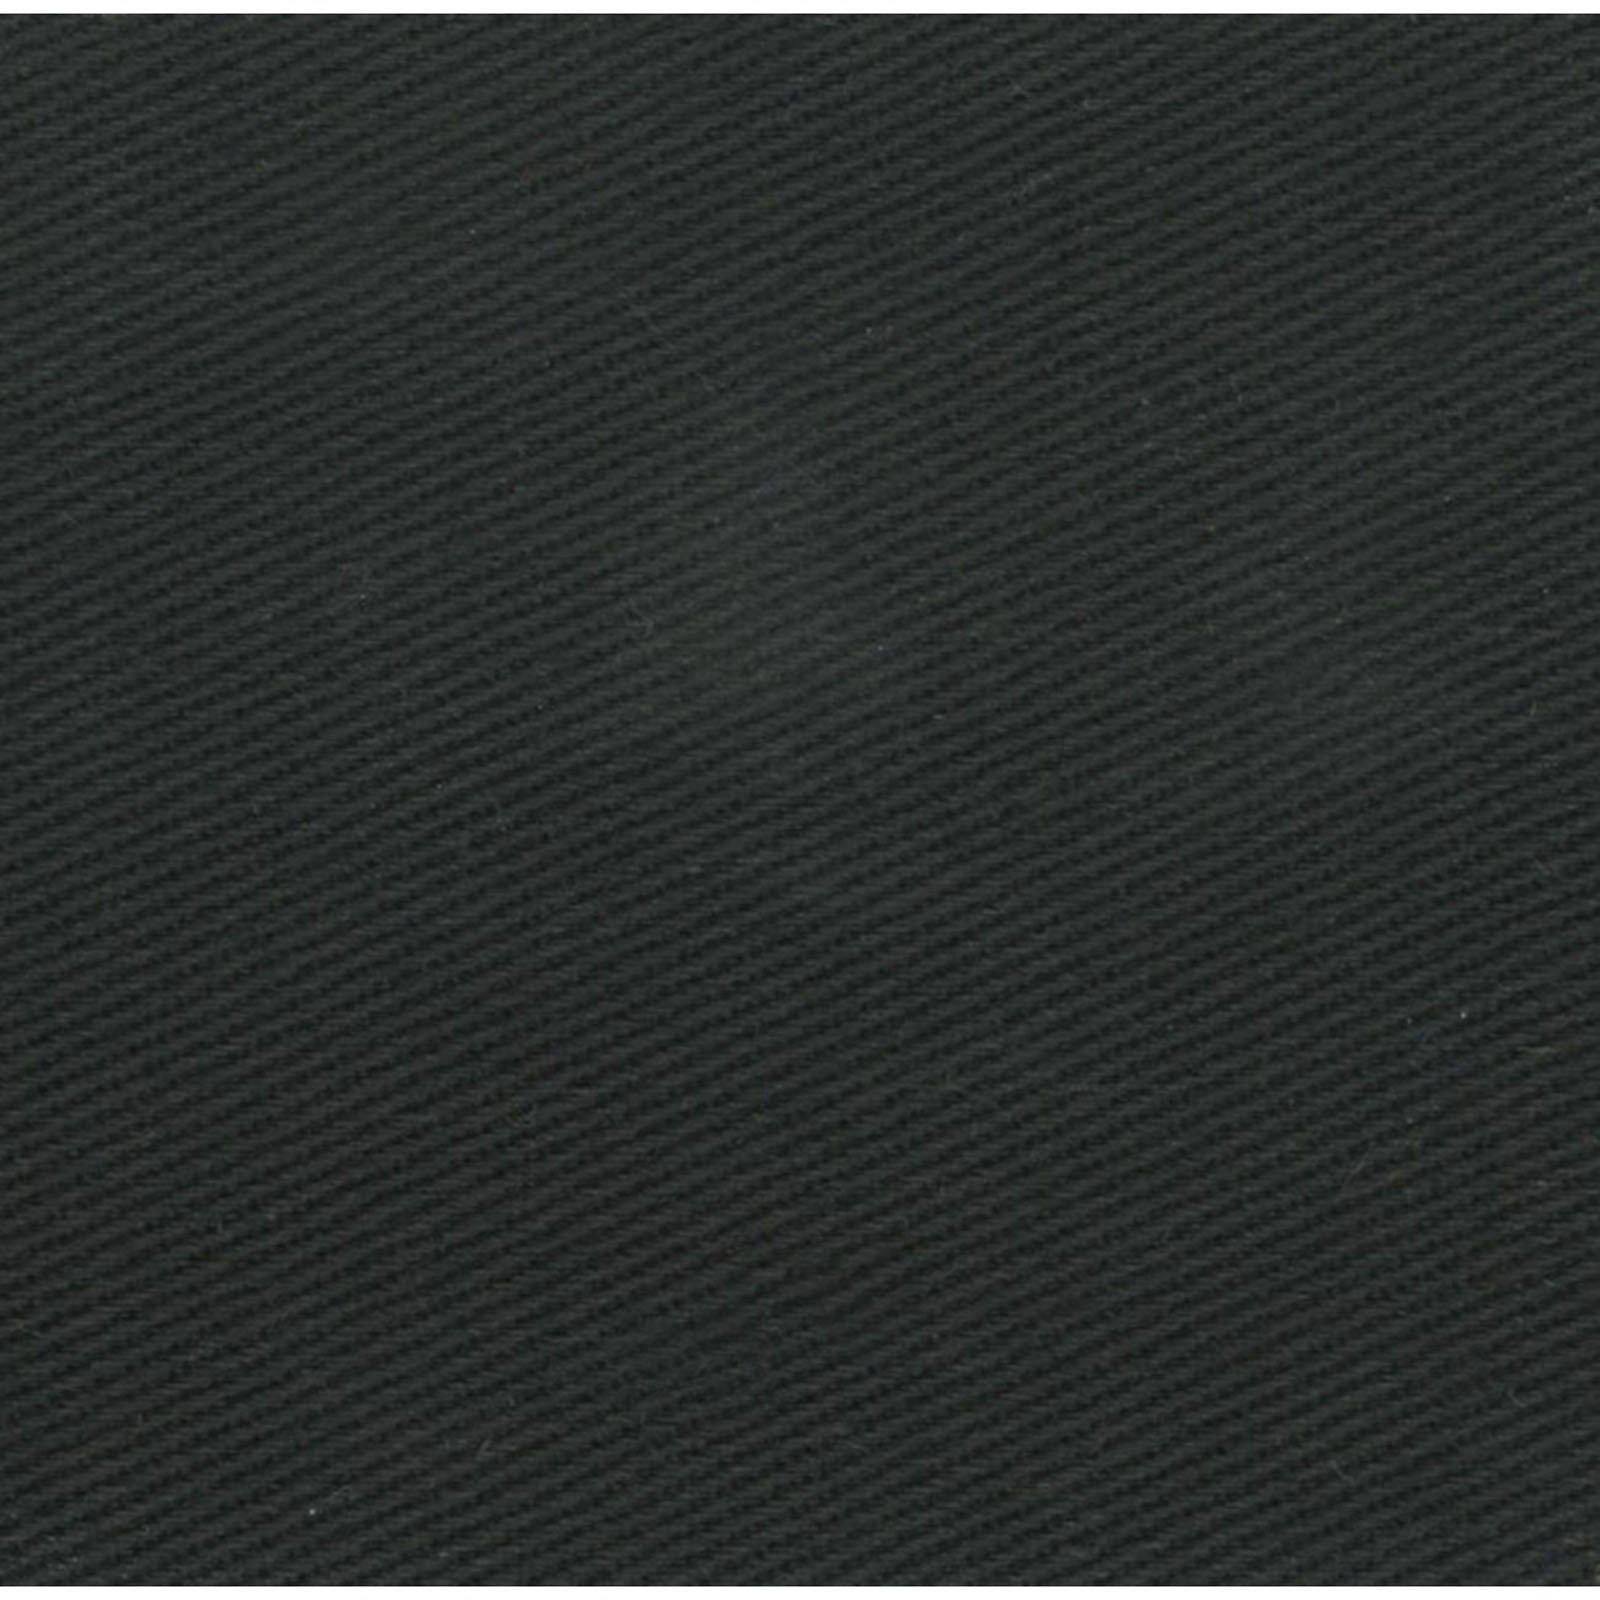 Westminster Twill - Black<br/>James Thompson WES-511100